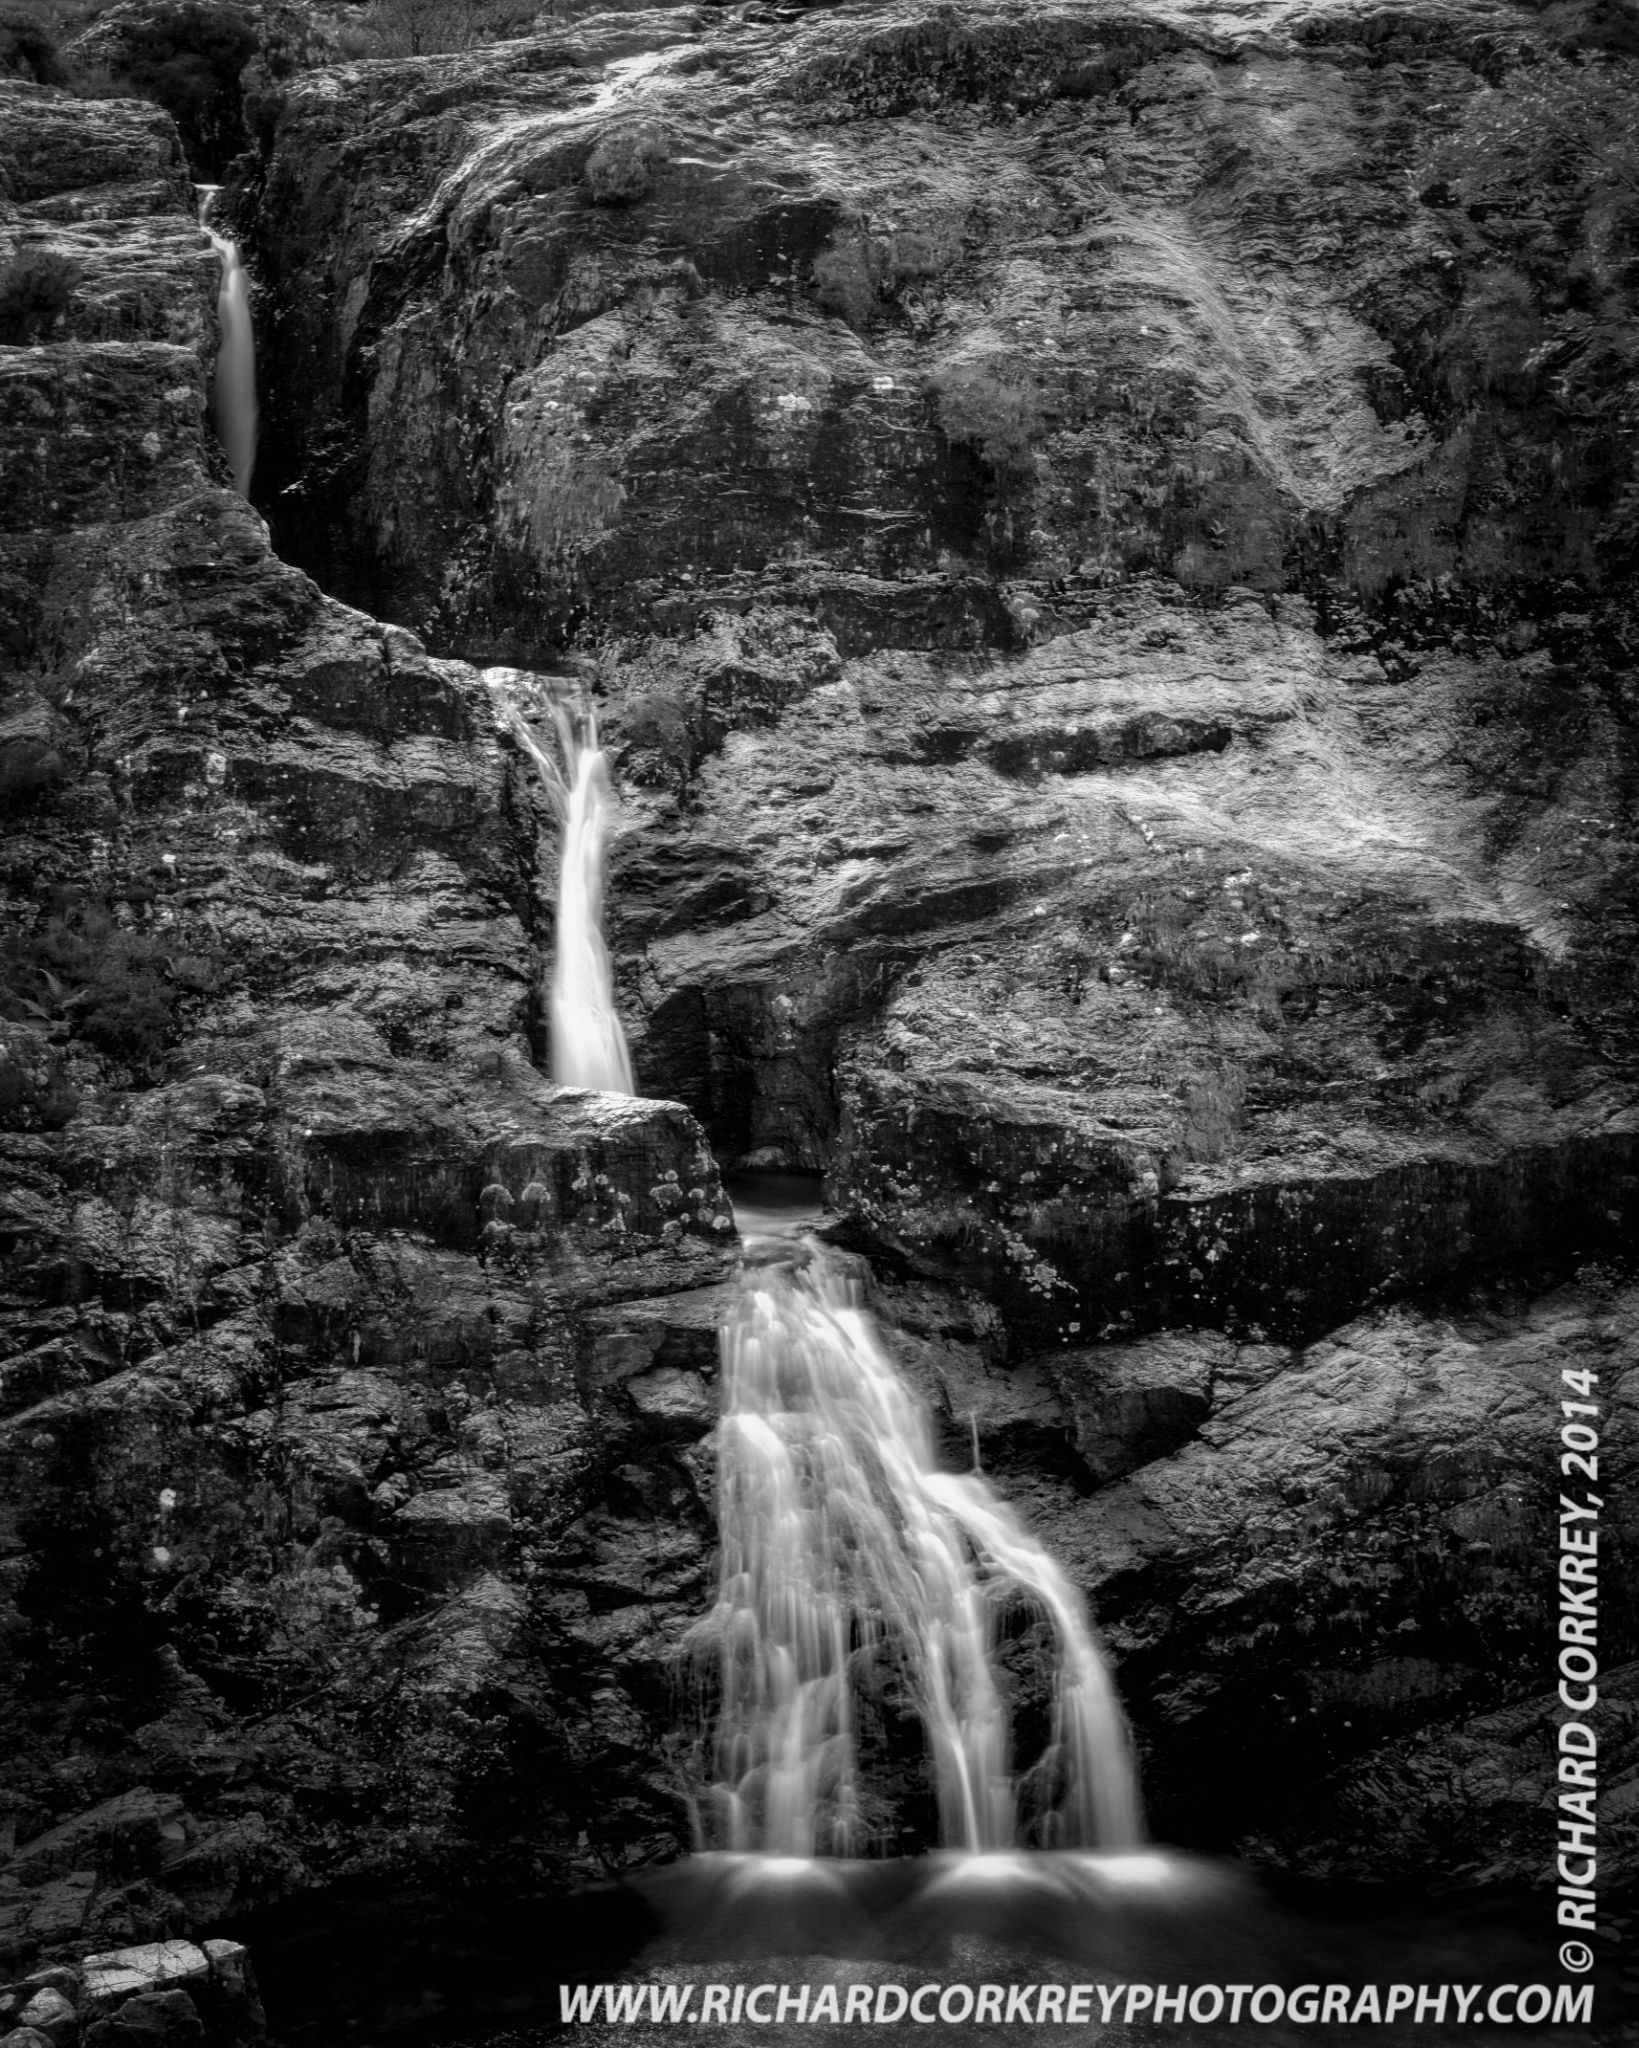 Waterfall at The Meeting of the Three Waters, Glencoe by Richard Corkrey